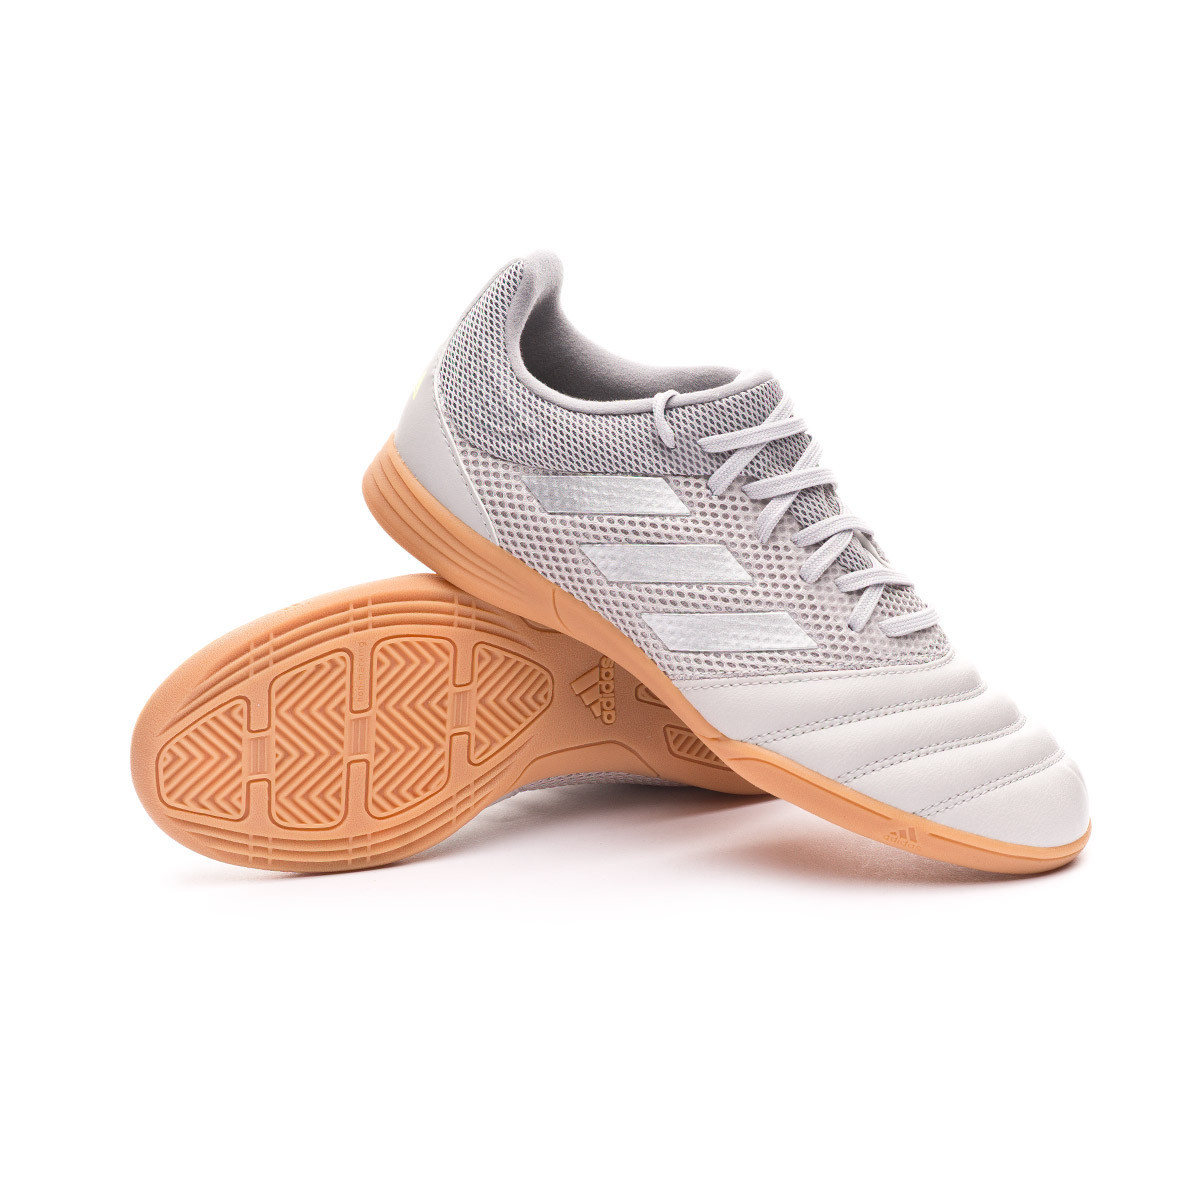 tenis mizuno liverpool 02 00 wr youth